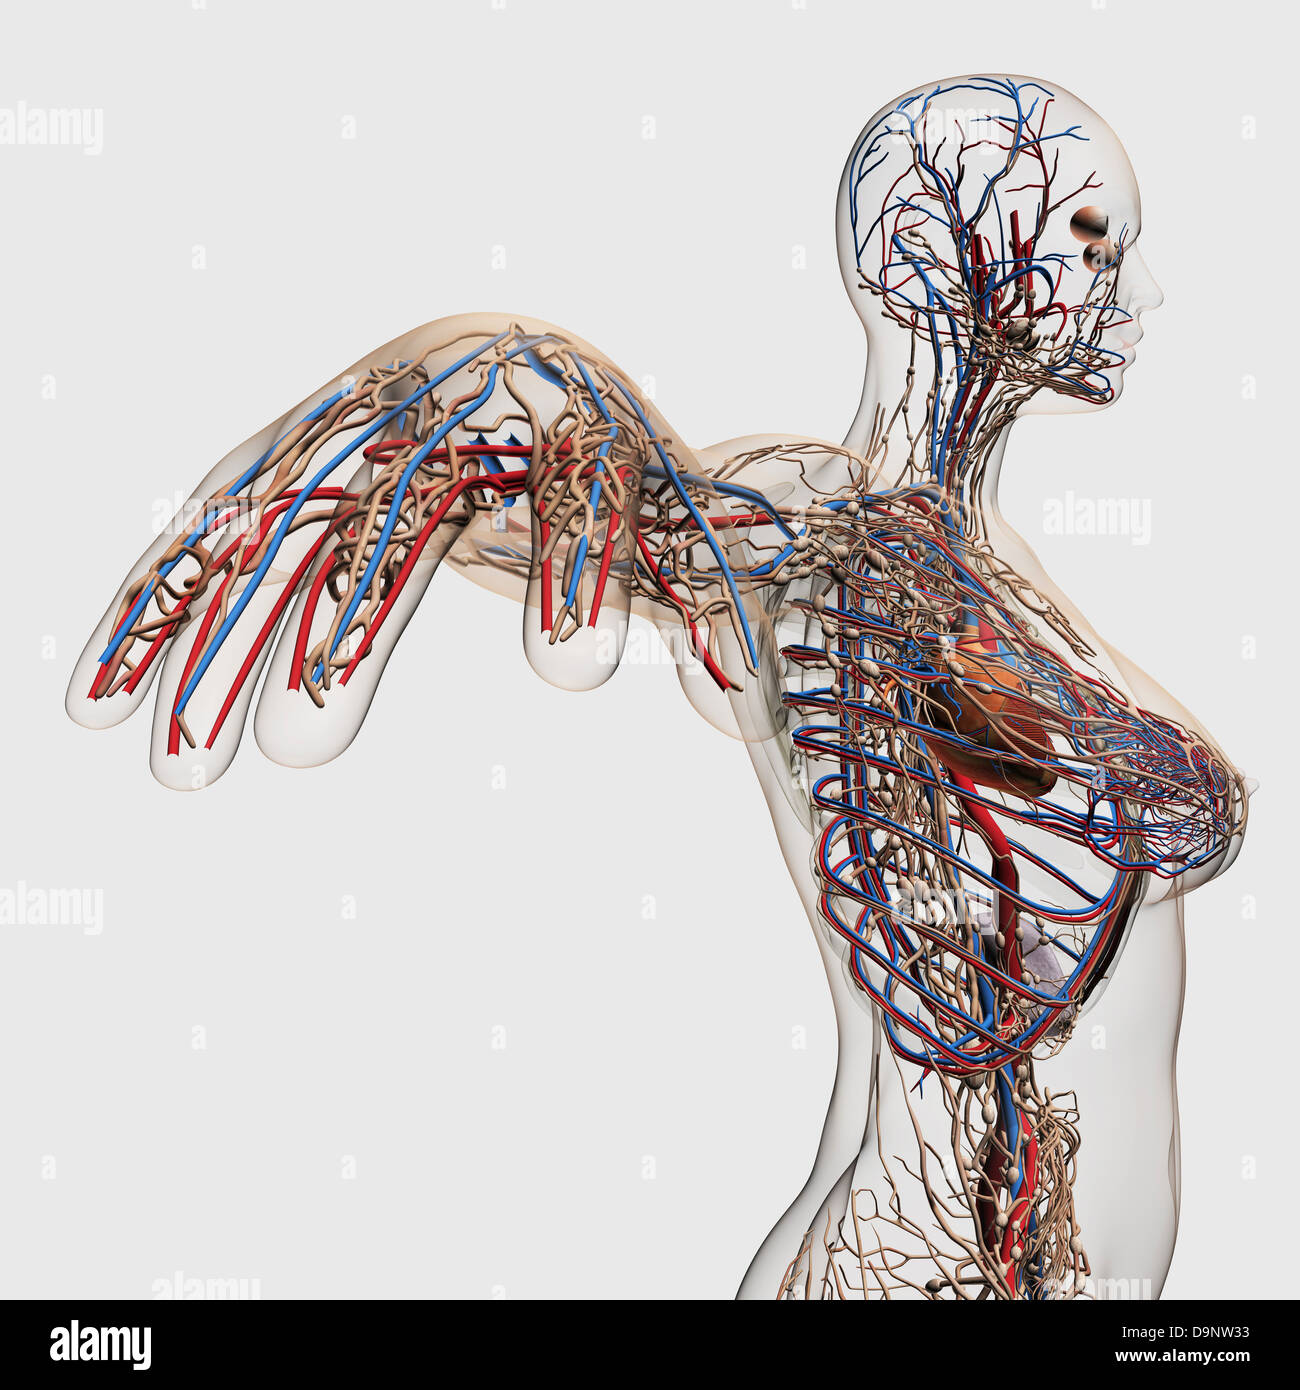 Female lymphatic system stock photos female lymphatic system stock medical illustration of arteries veins and lymphatic system with heart profile view of female ccuart Images